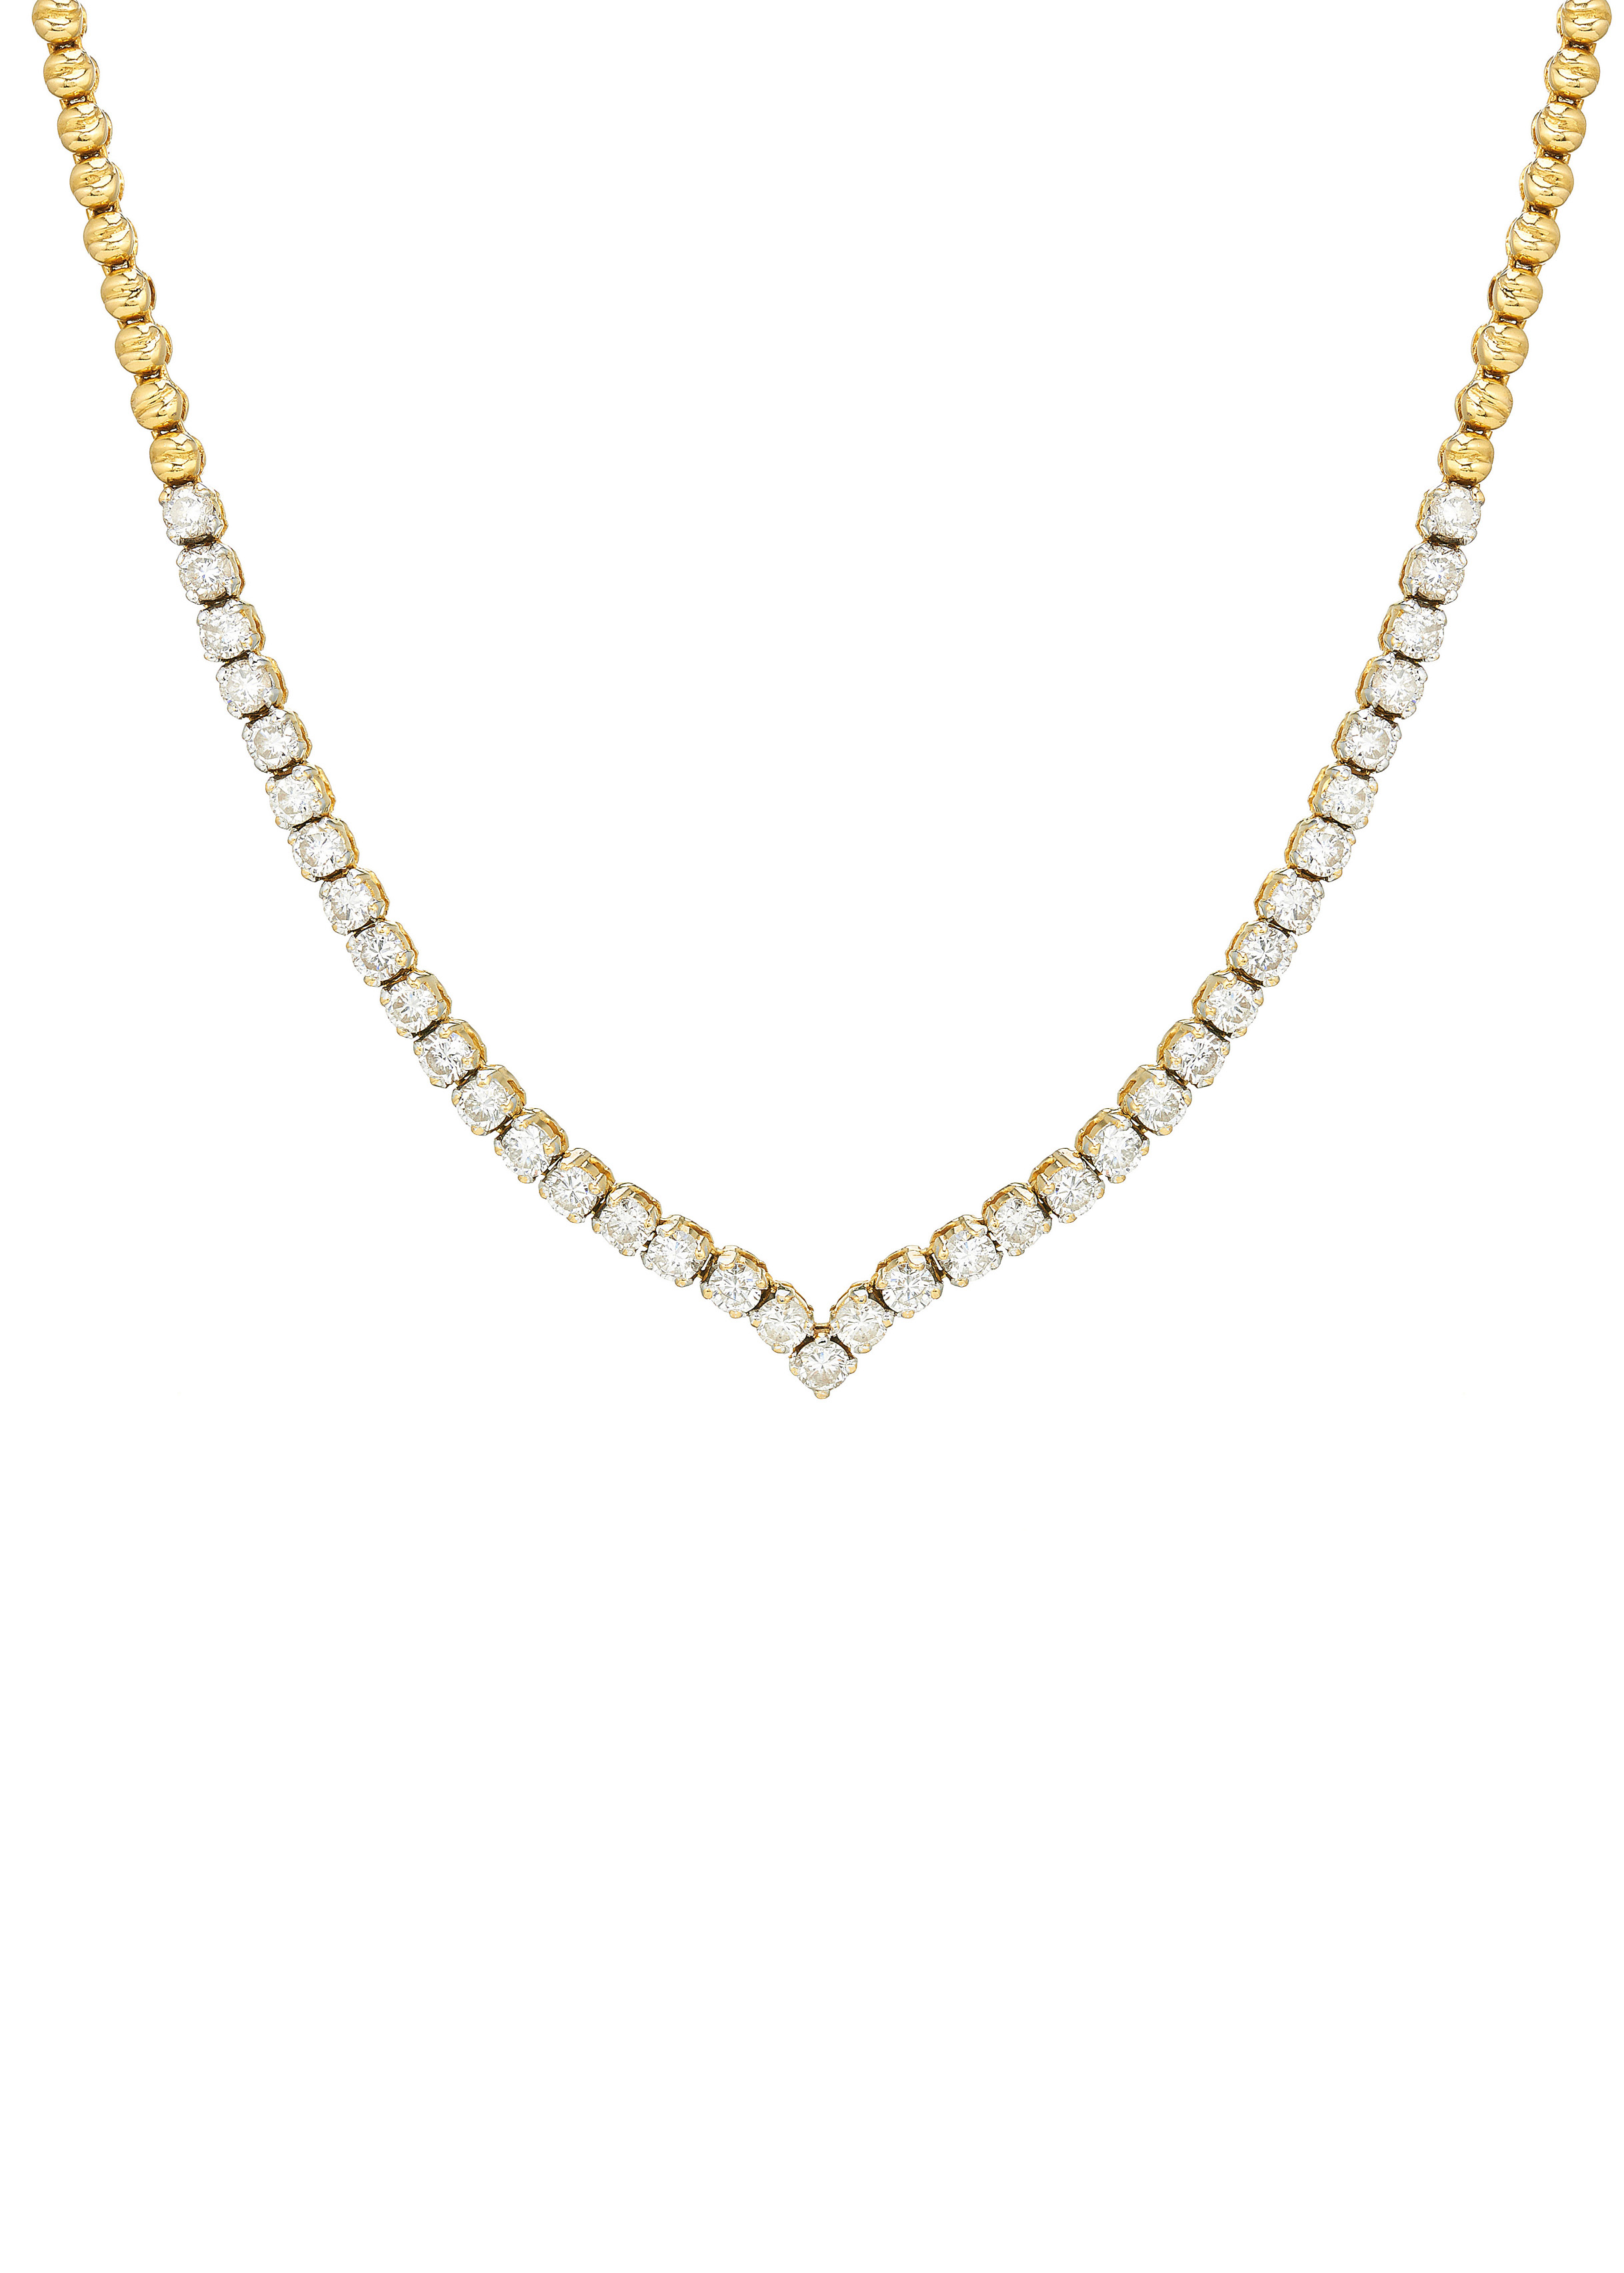 An 18ct gold diamond line necklace